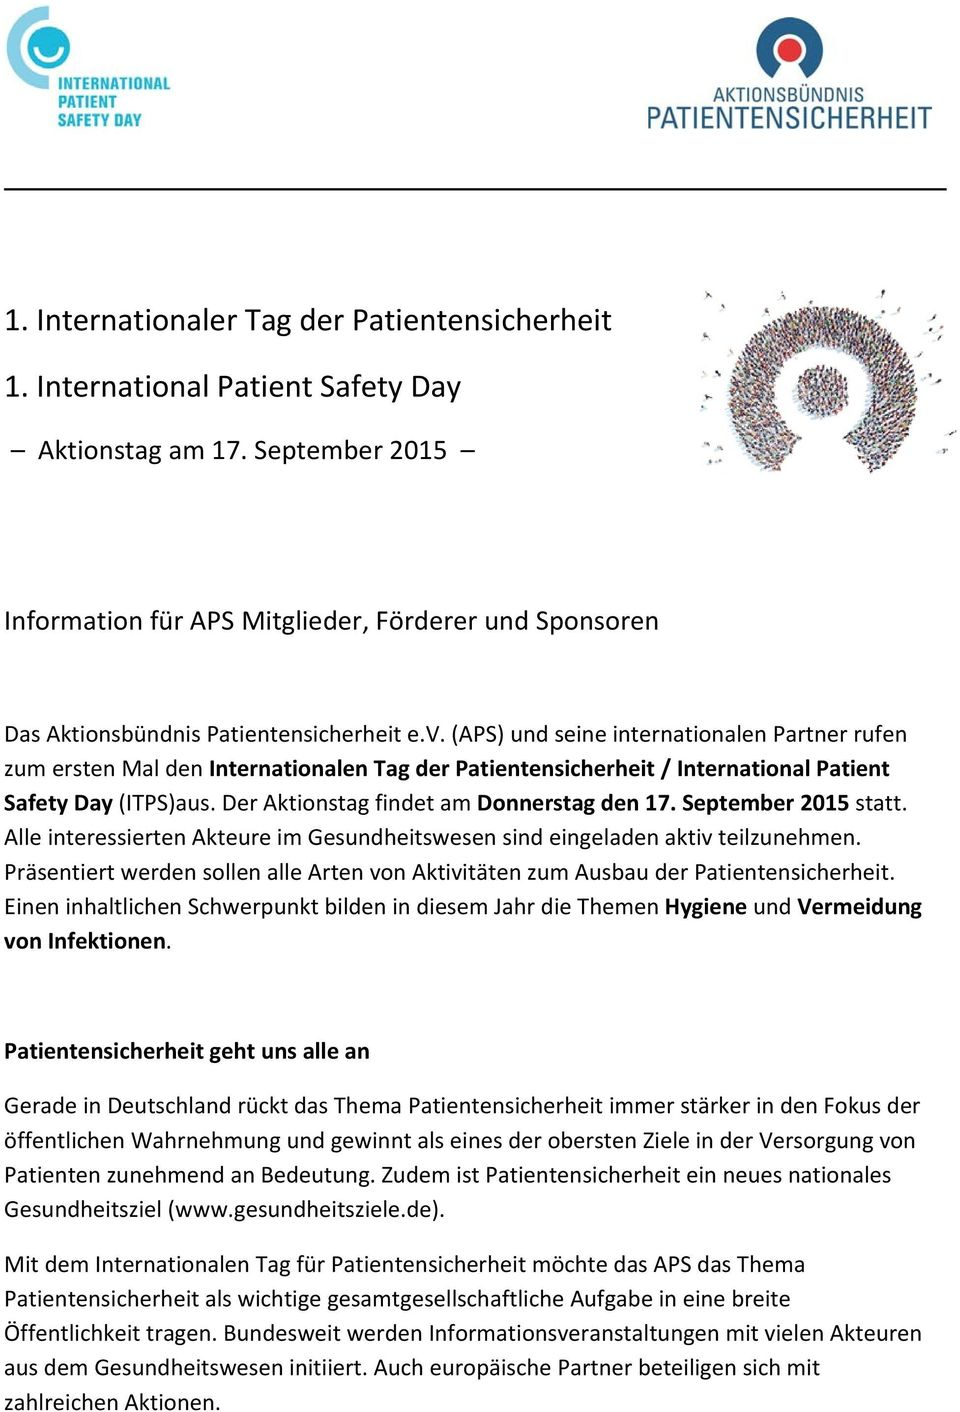 (APS) und seine internationalen Partner rufen zum ersten Mal den Internationalen Tag der Patientensicherheit / International Patient Safety Day (ITPS)aus. Der Aktionstag findet am Donnerstag den 17.